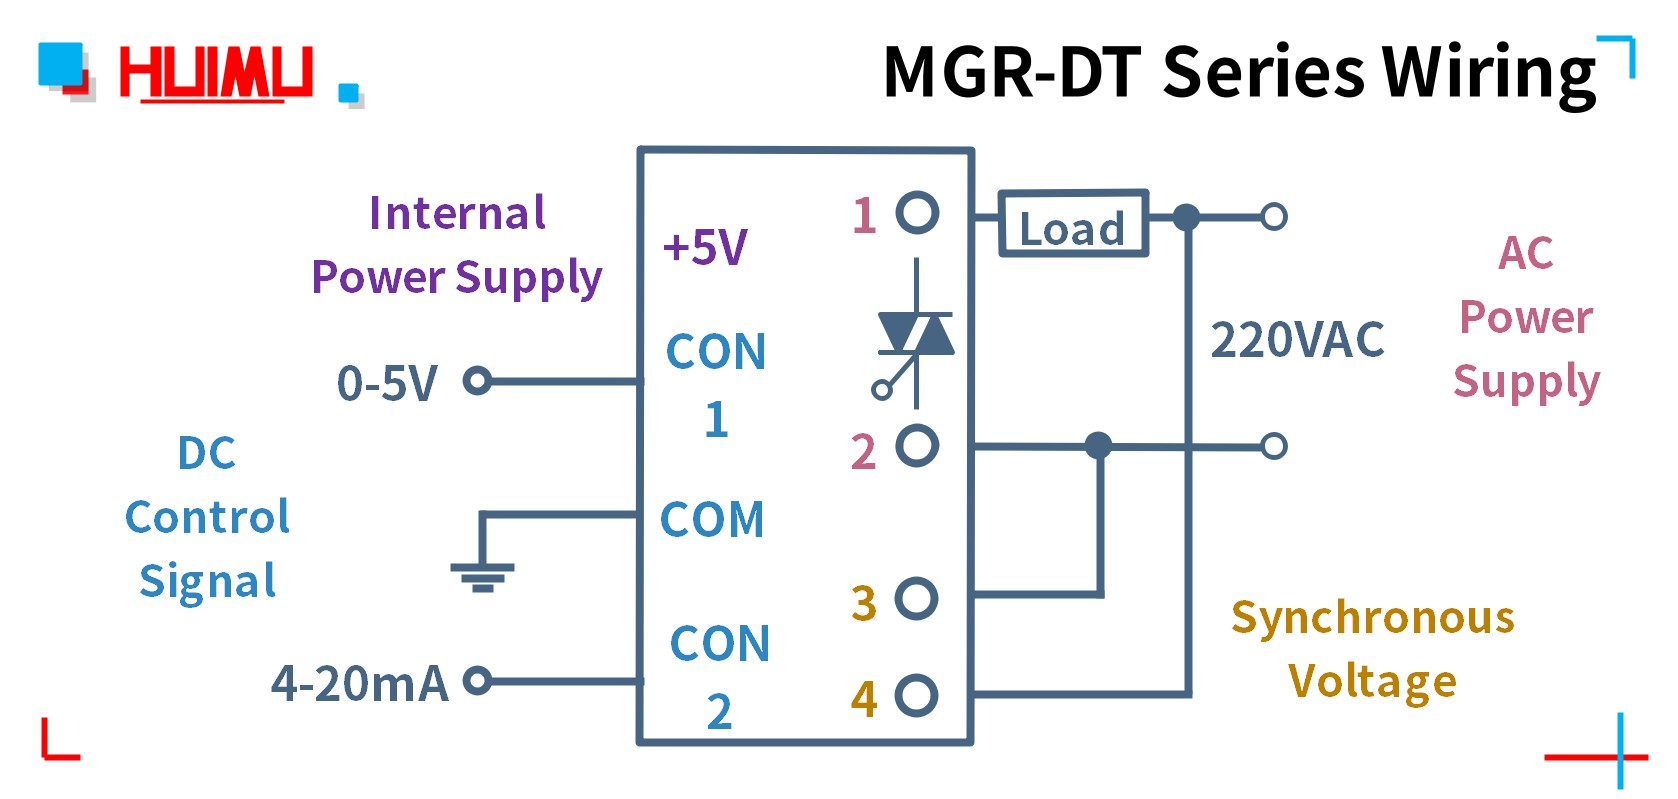 The circuit wiring diagram of MGR-DT series regulation module.